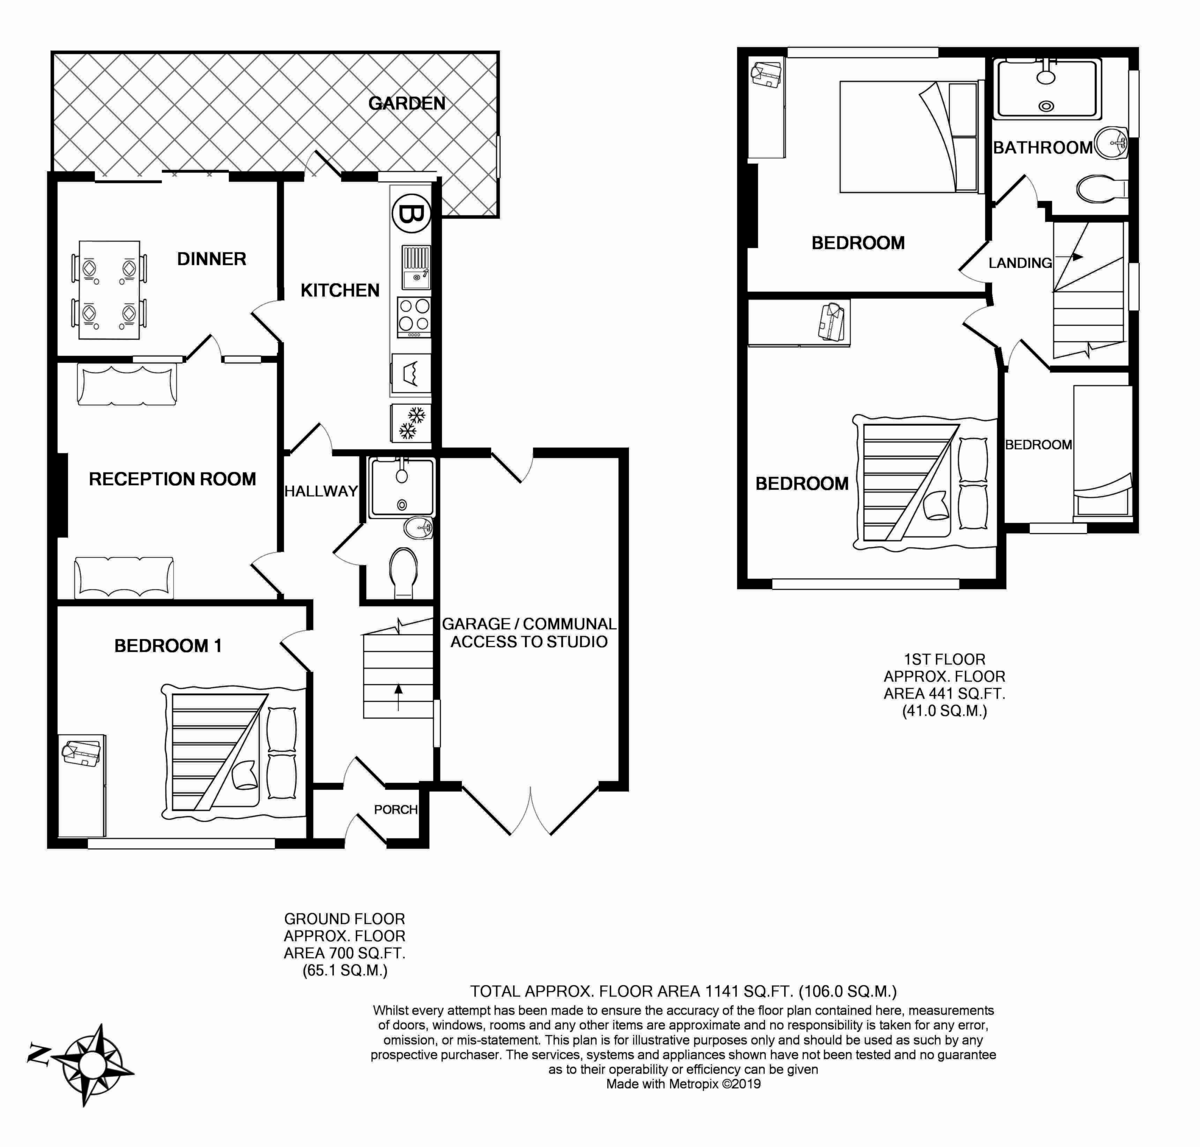 Floorplans For Lewis Crescent, London, NW10 0NR